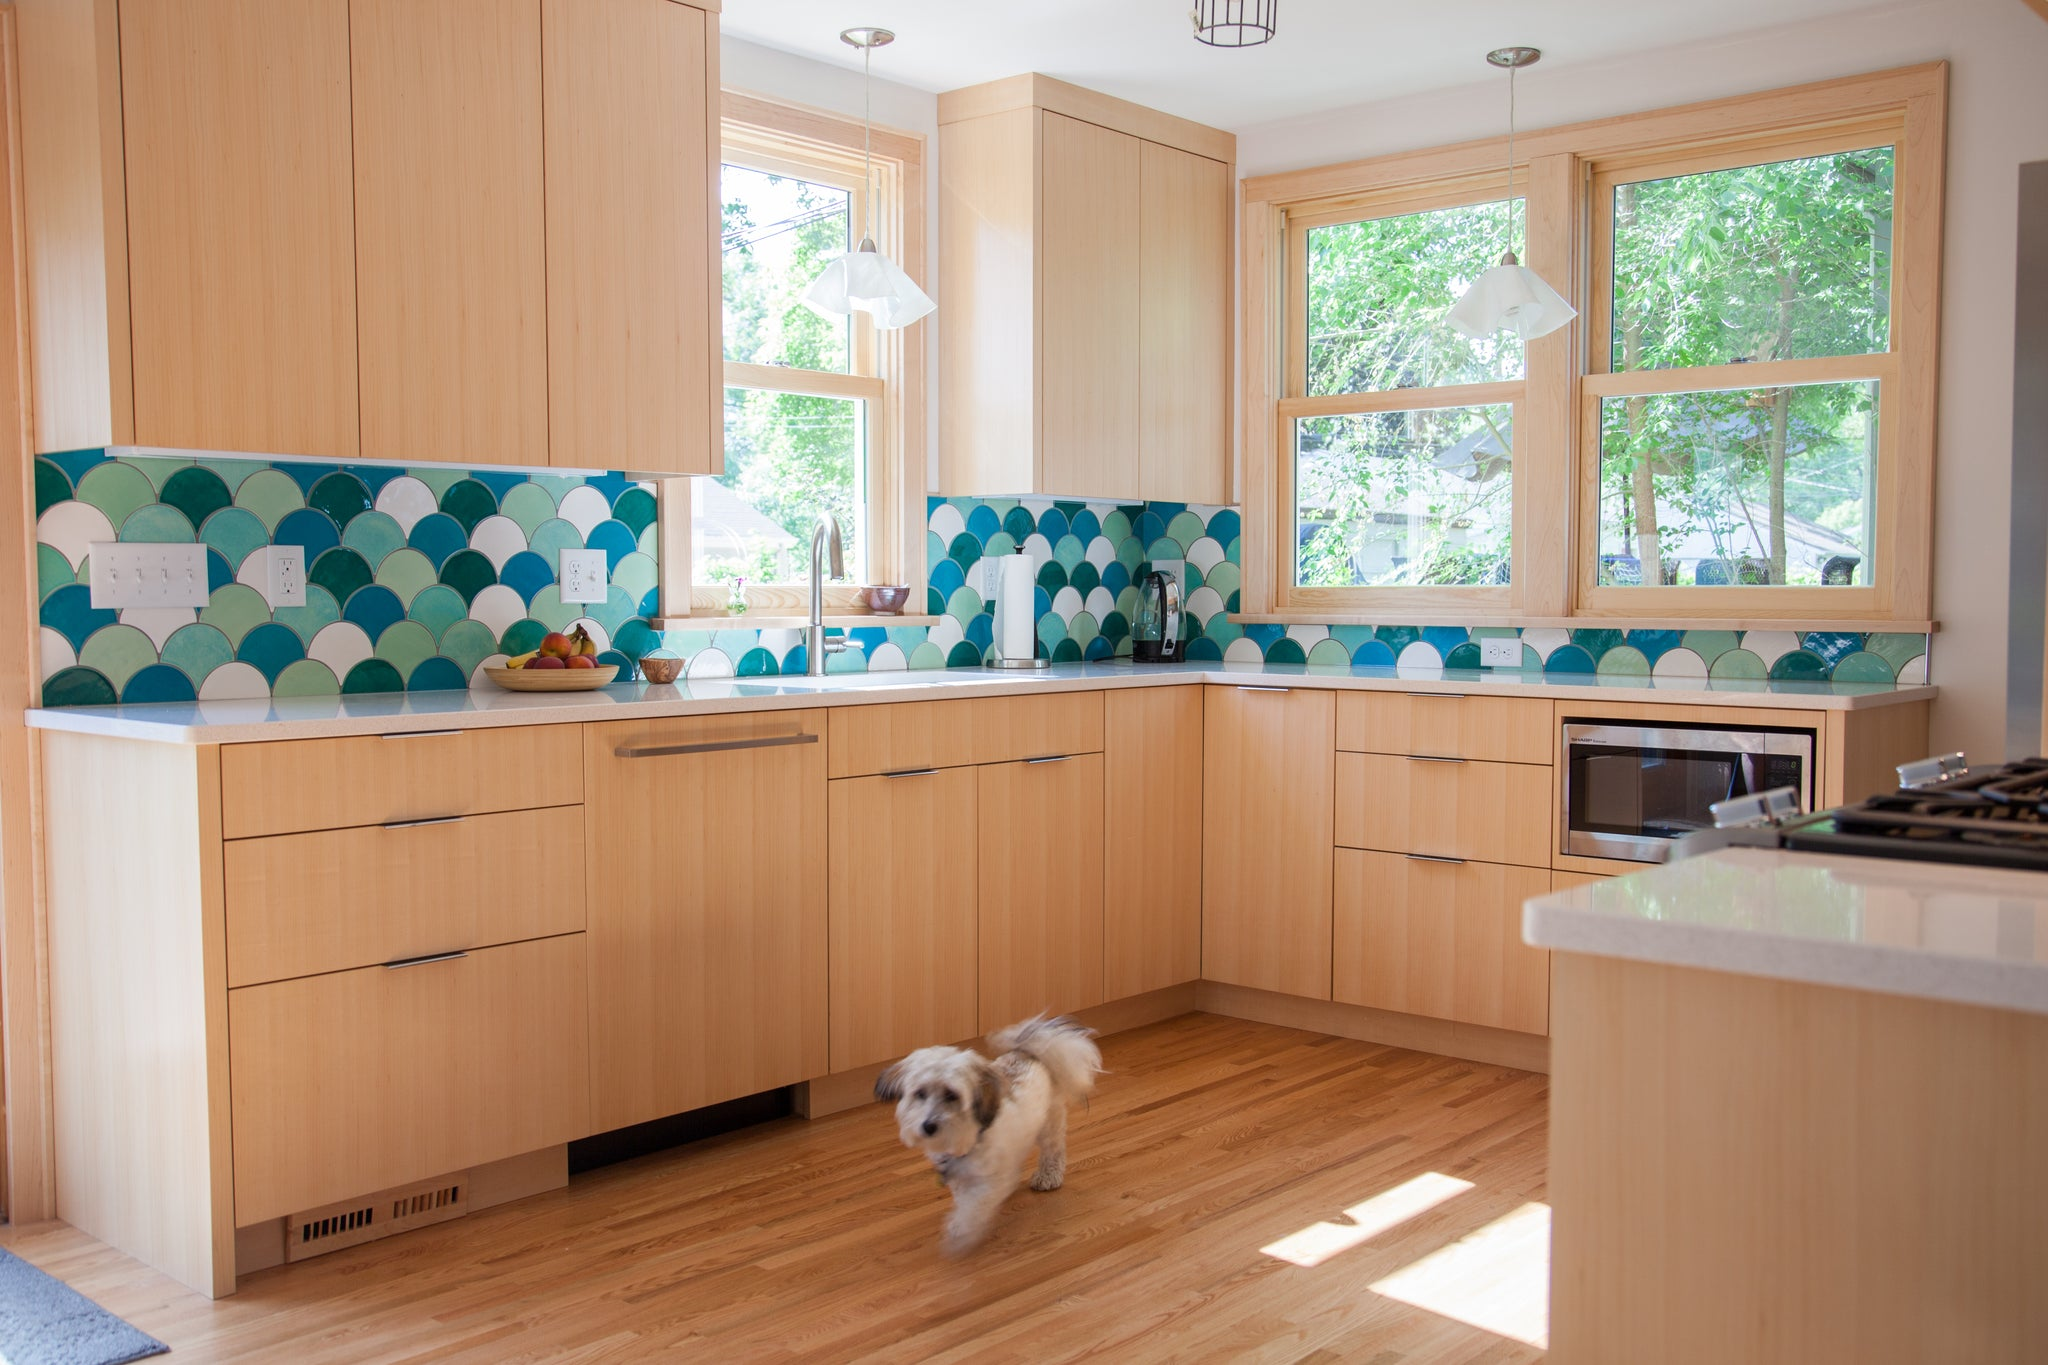 Tropical Kitchen Backsplash